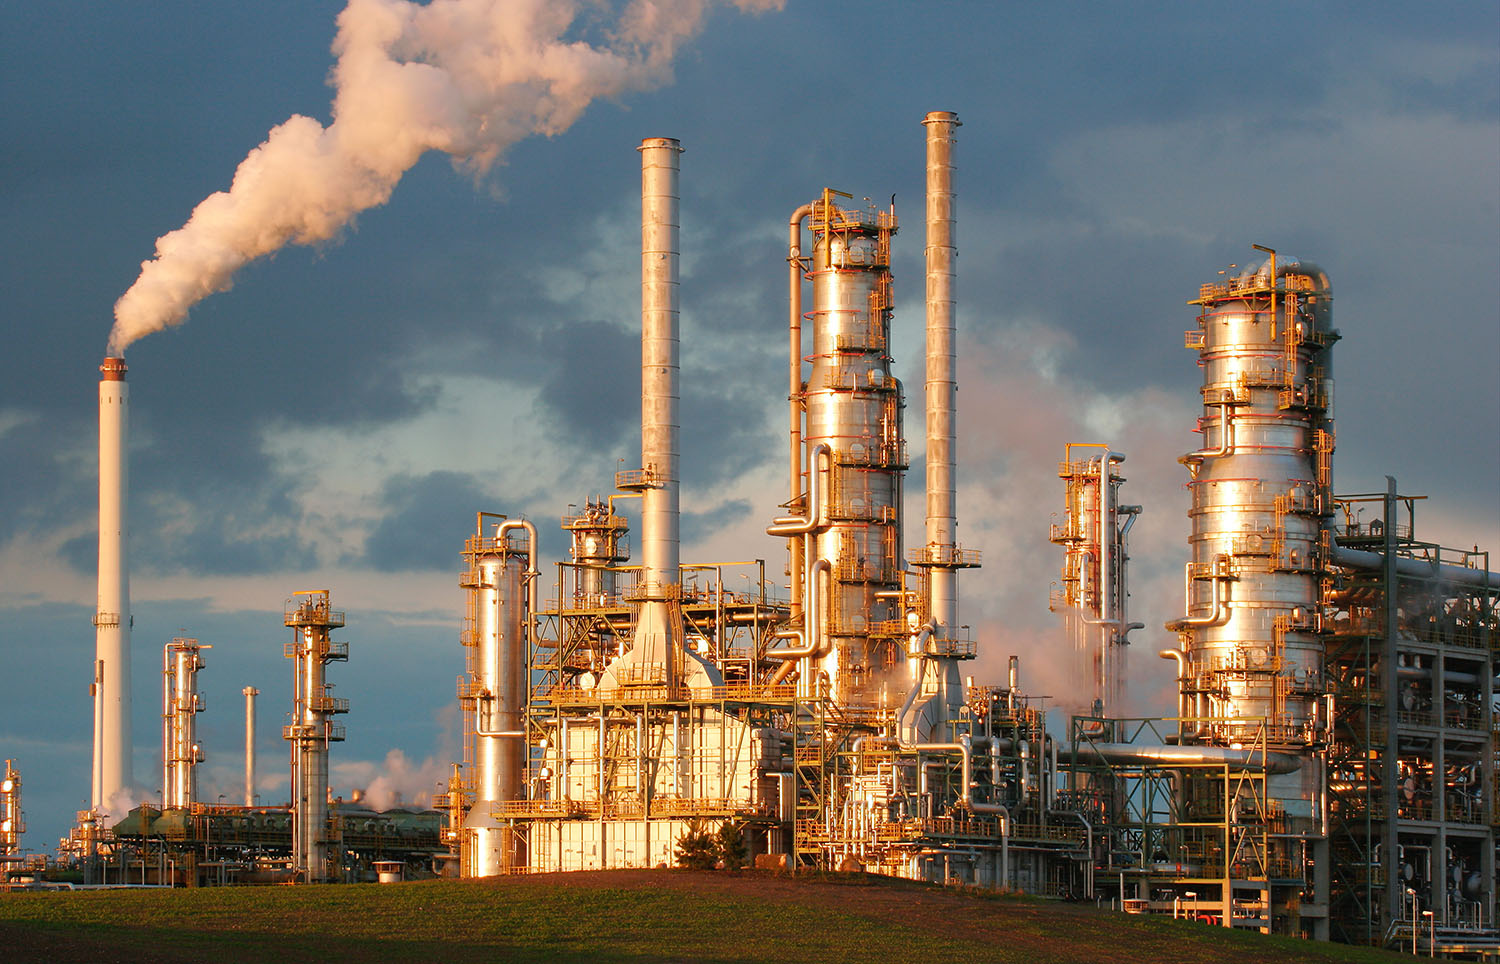 Monitoring Support for Oil Refineries to Comply with Federal Regulations